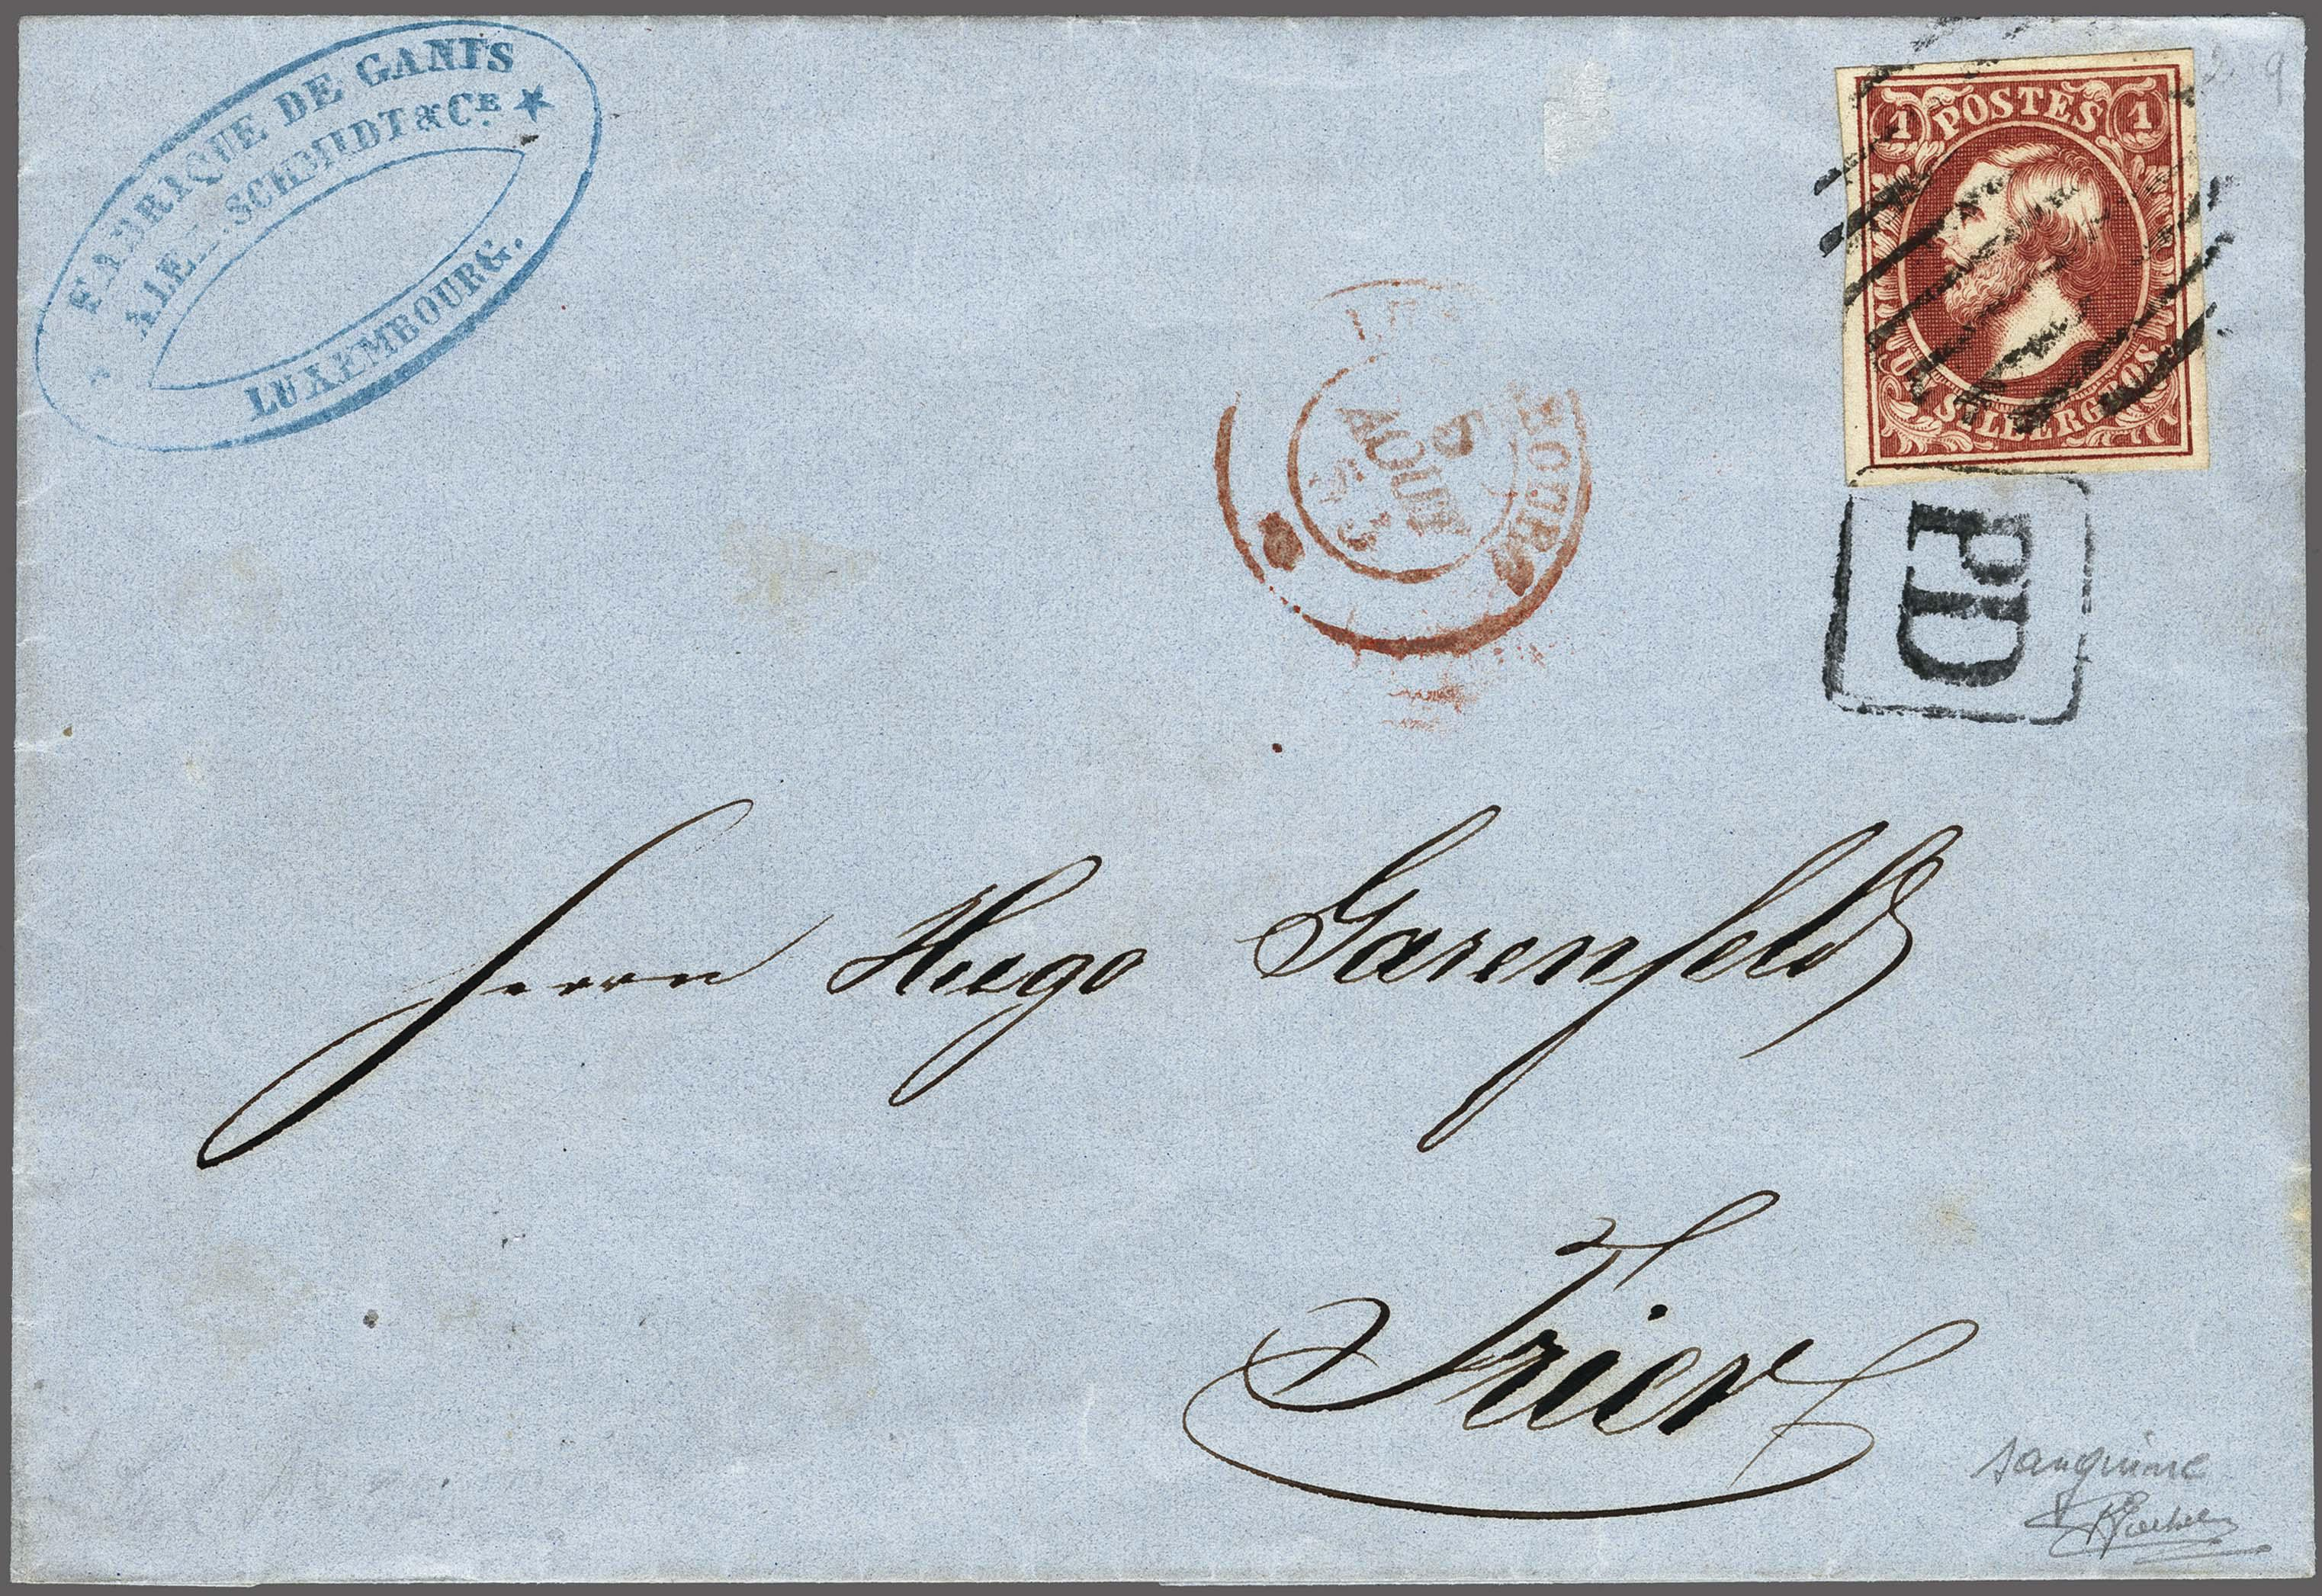 Lot 223 - European Countries Luxembourg -  Corinphila Veilingen Auction 250-253 - Day 1 - Foreign countries